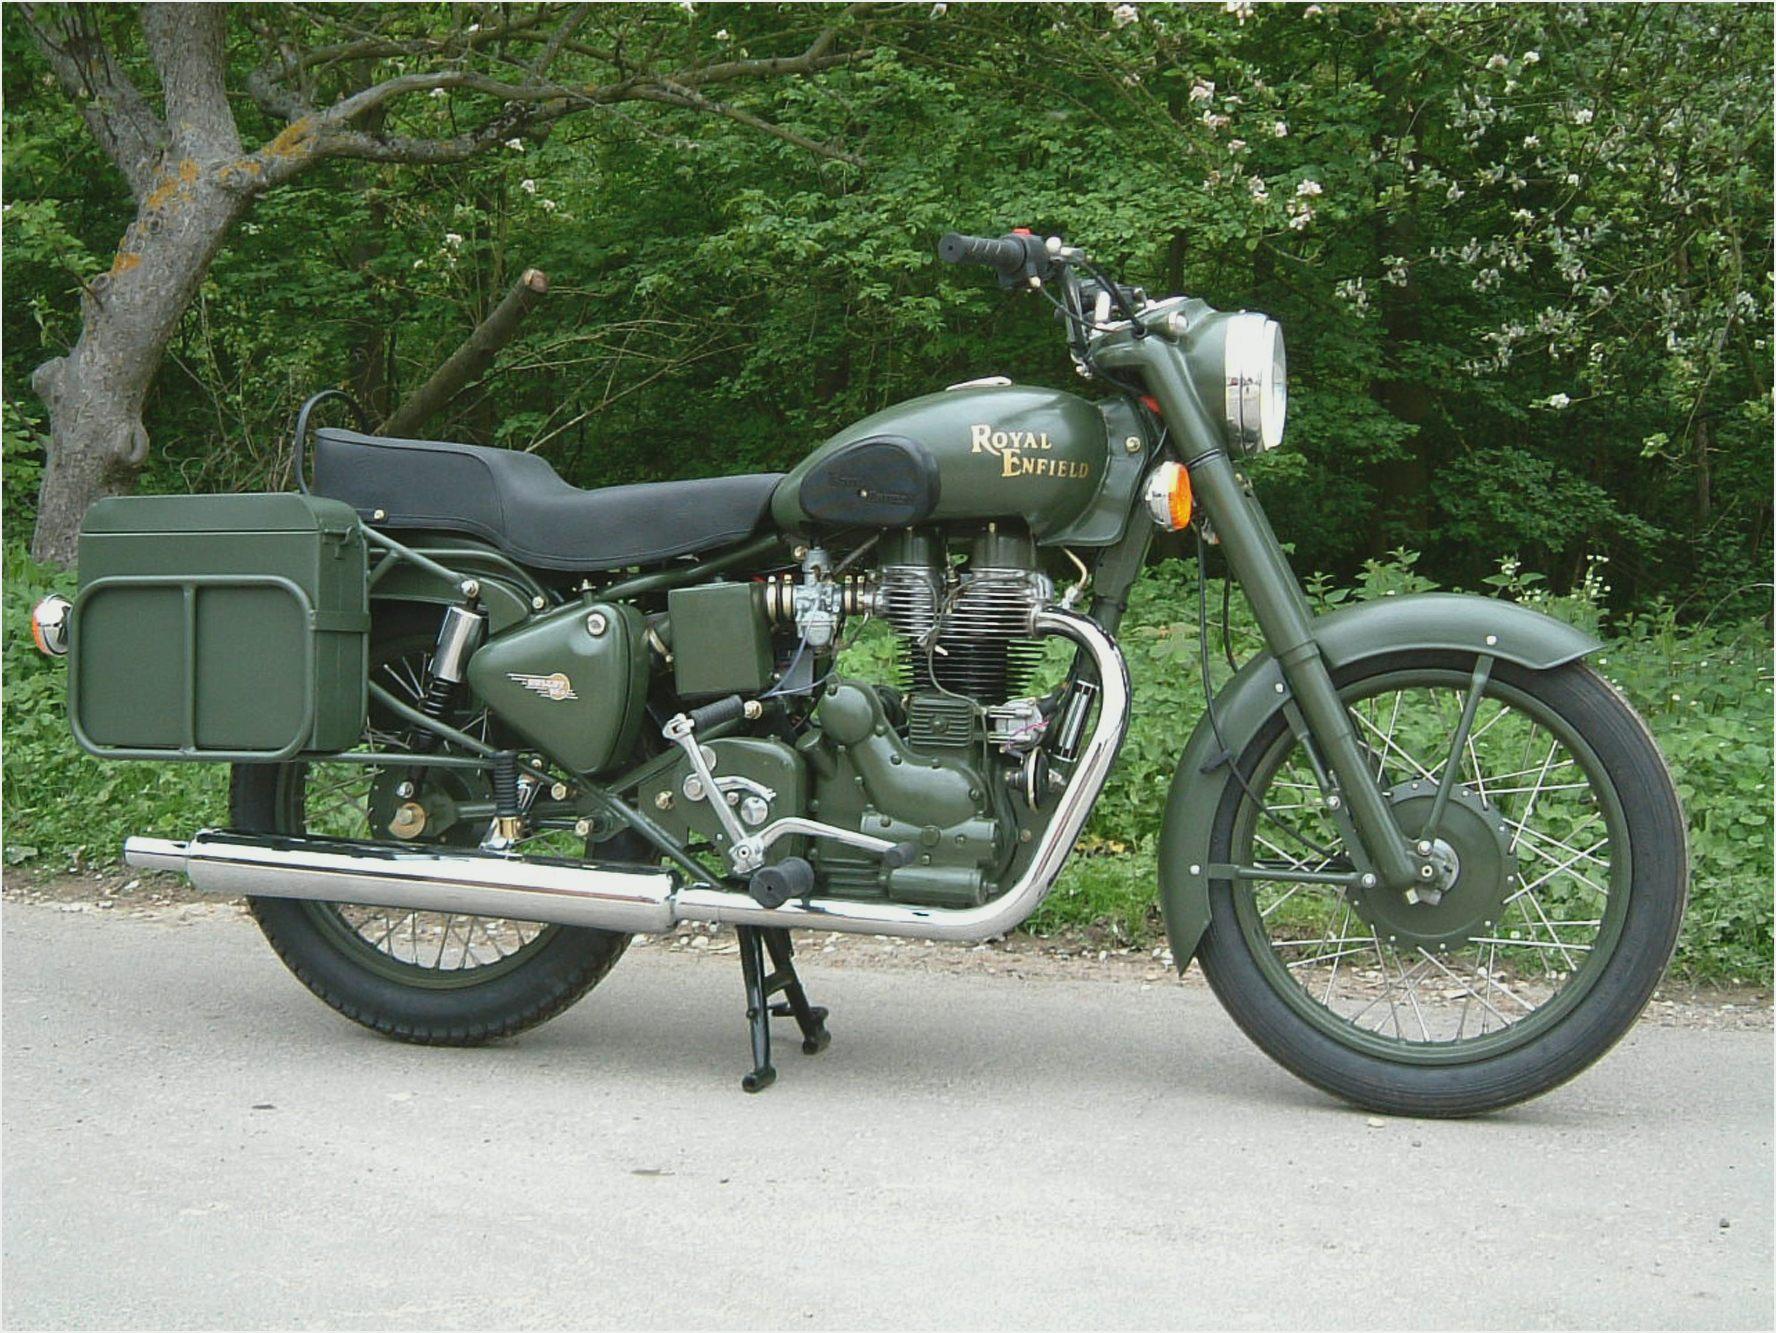 Royal Enfield Bullet 350 Army 2004 images #126524